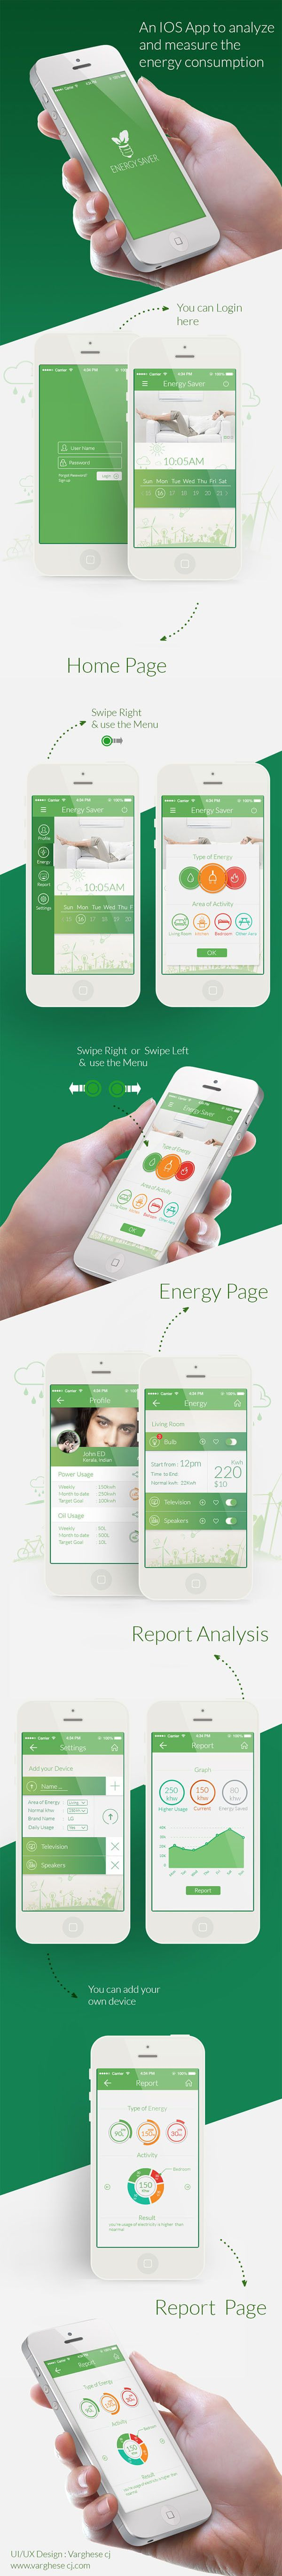 IOS app to analyze your energy consumption #ios #app #mobile #design #home #ux #ui